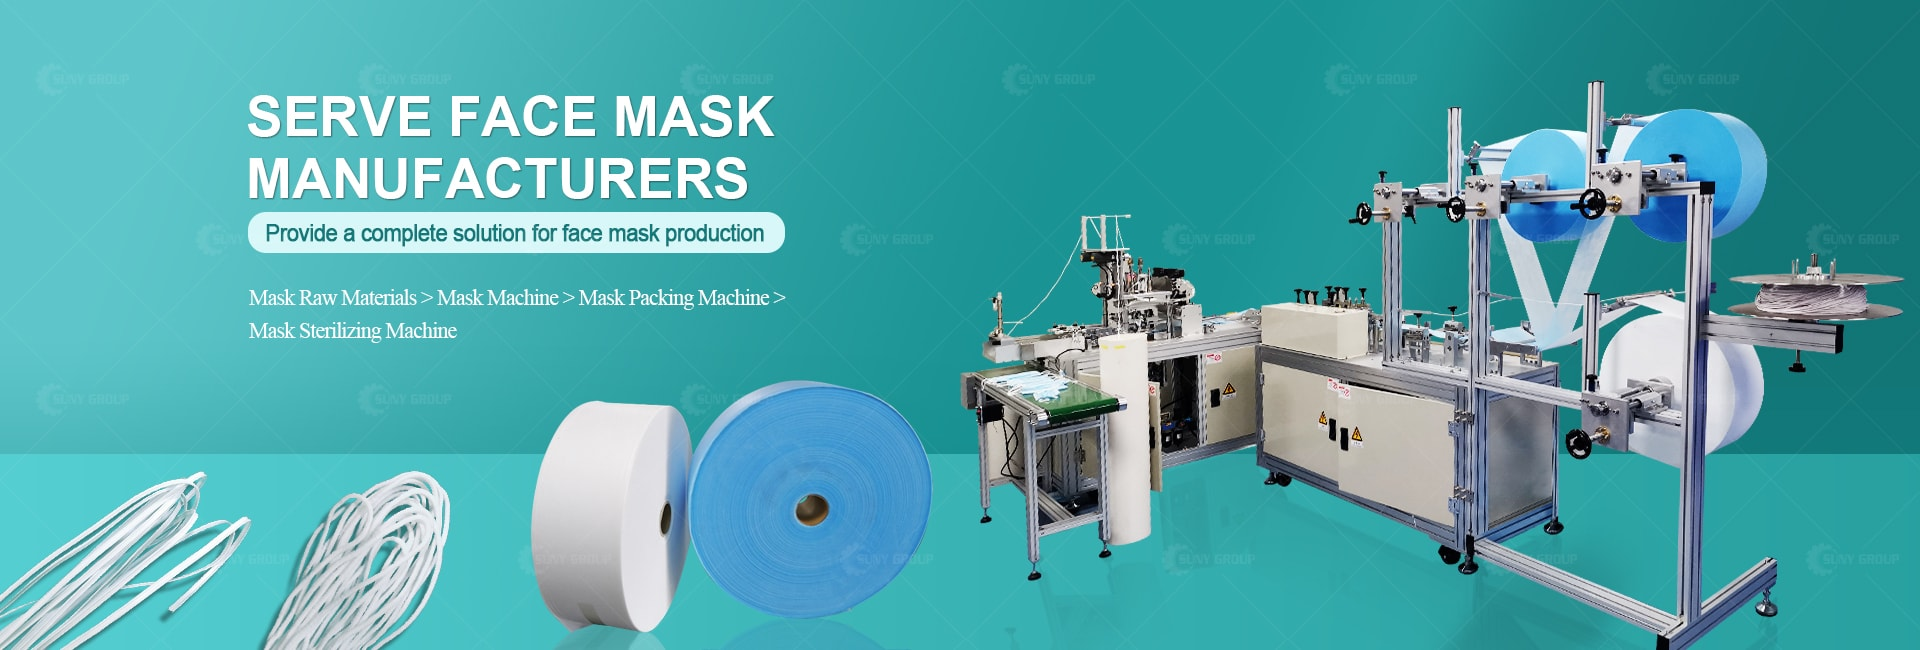 Mask Raw Materials